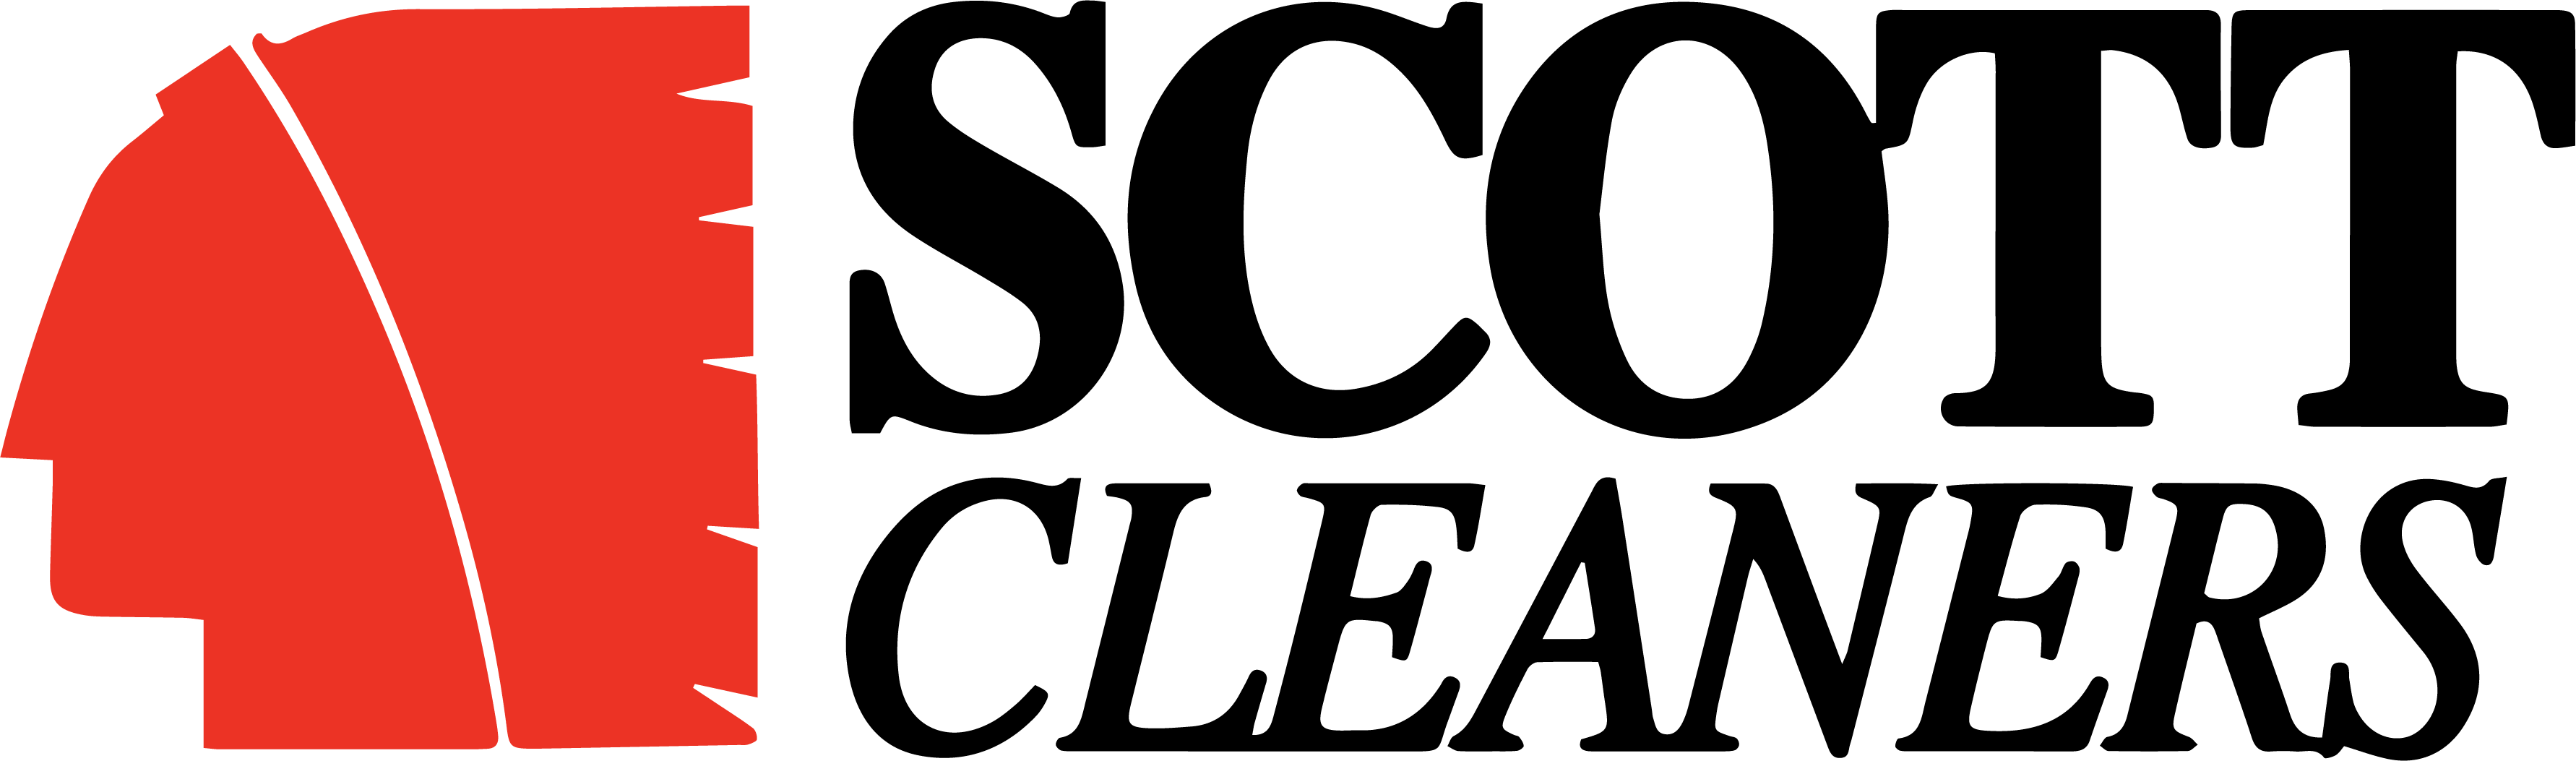 Scott Cleaners Short Logo - Black